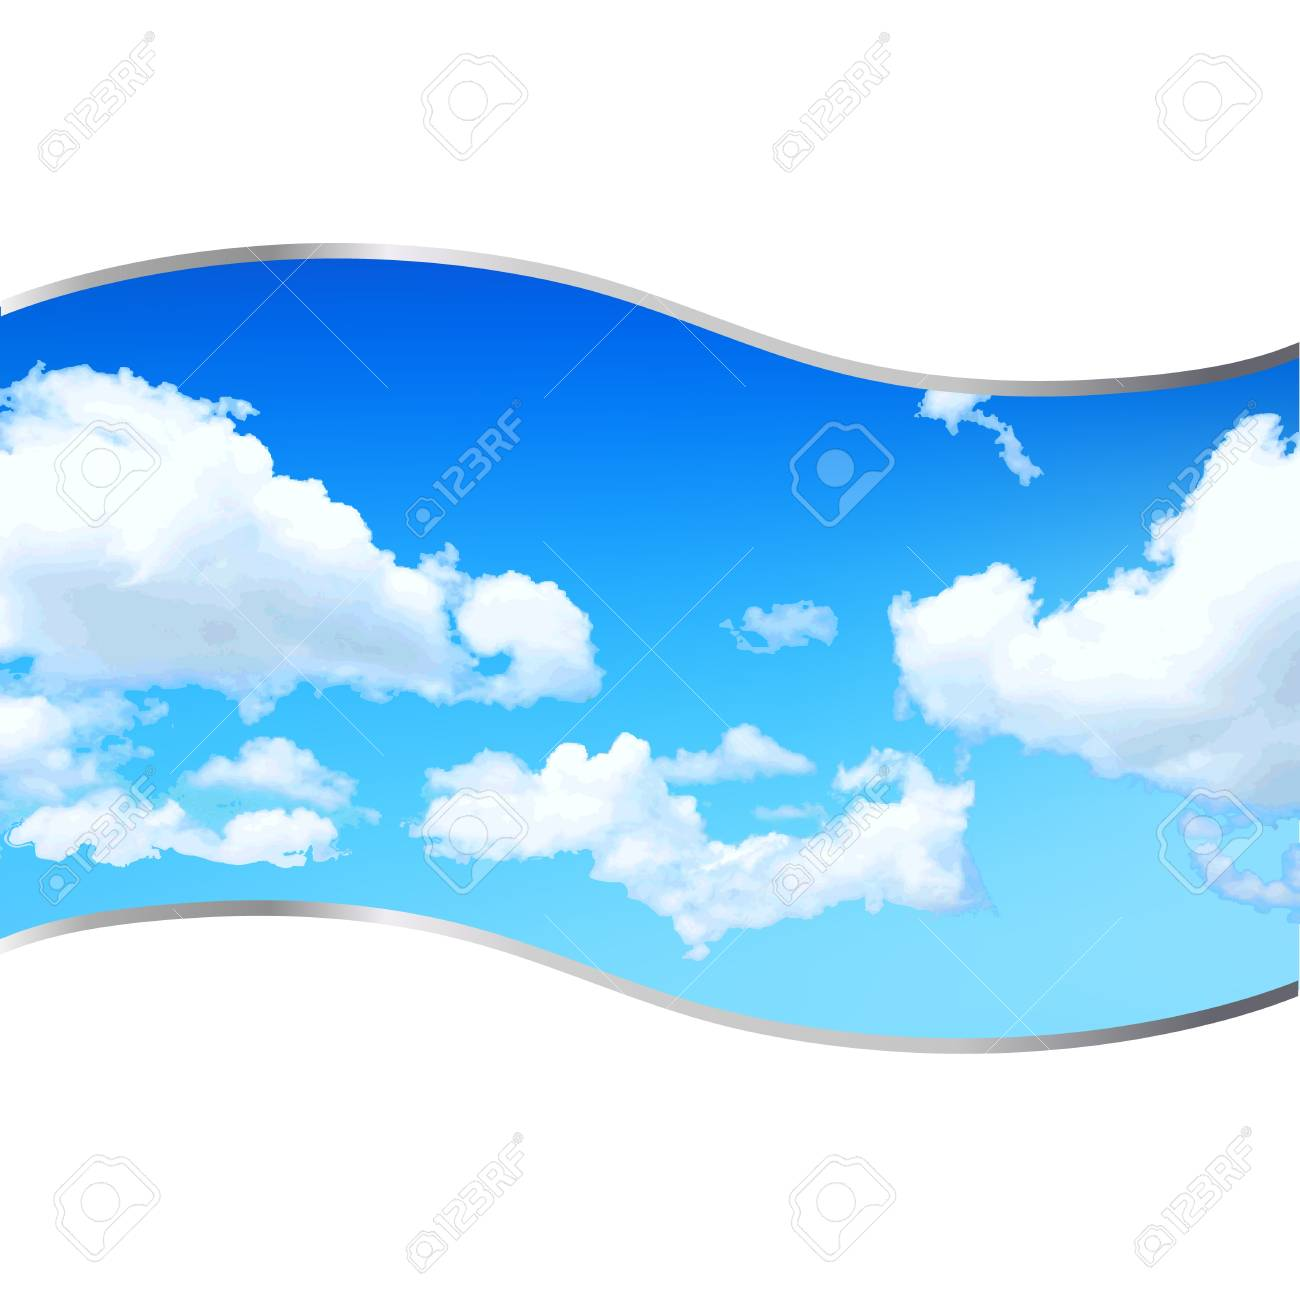 sky clouds background nature landscape royalty free cliparts rh 123rf com vector skydiving gear vector skydiving gear